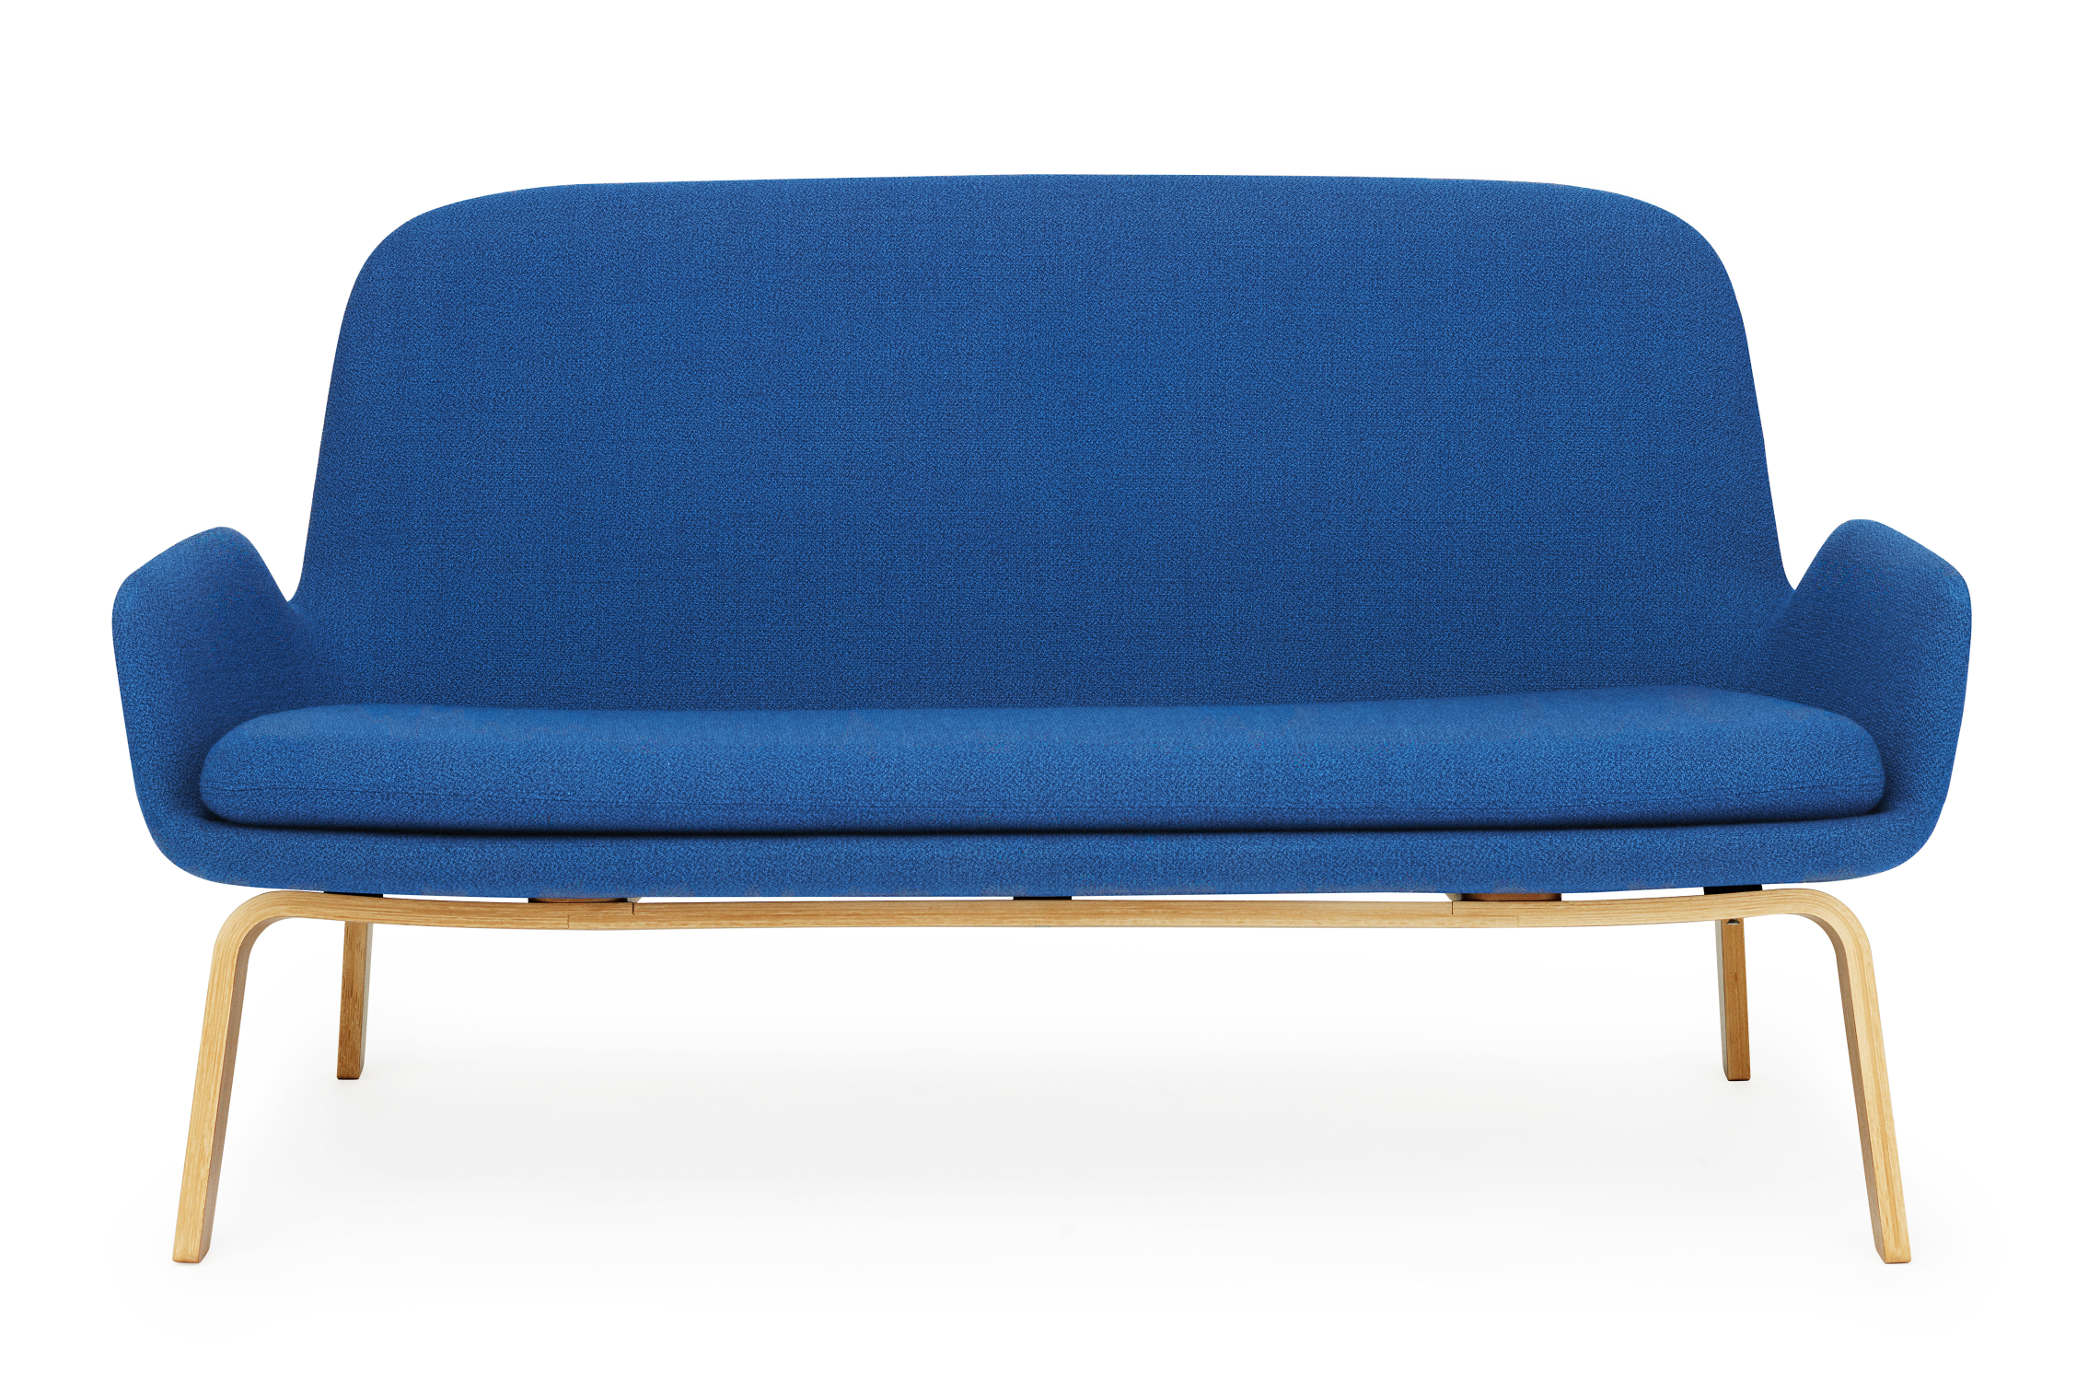 Normann copenhagen era sofa for Barhocker normann copenhagen